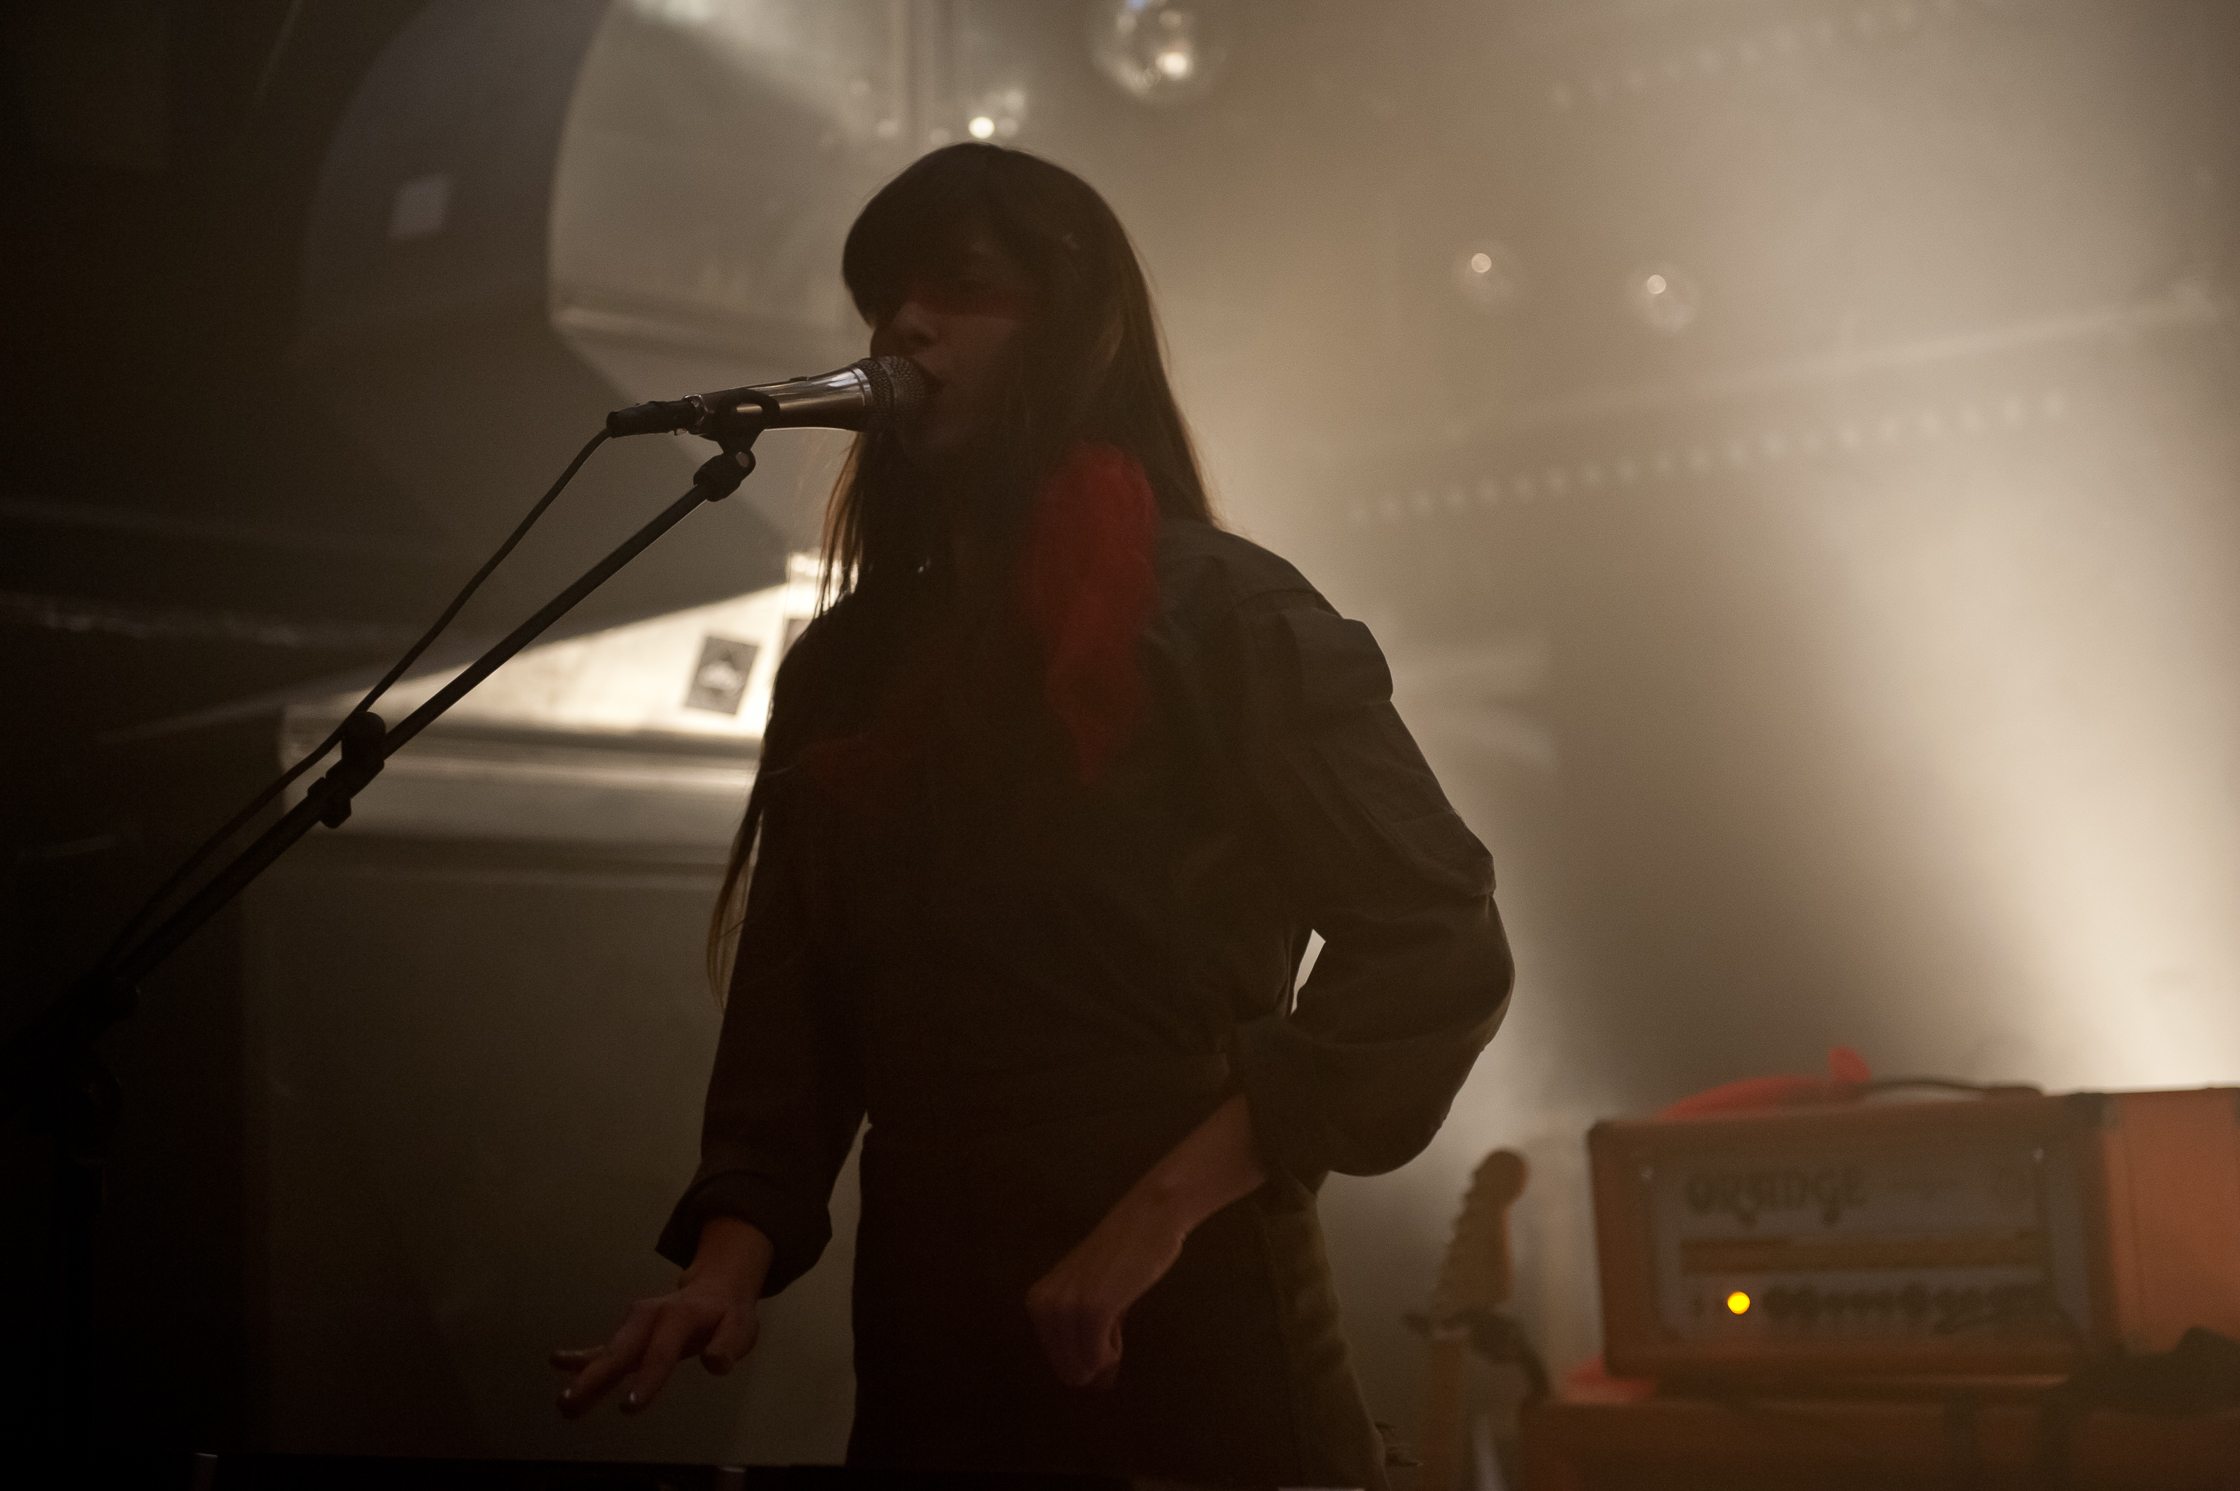 2016_09_23_arteather_lebutcherettes-1168